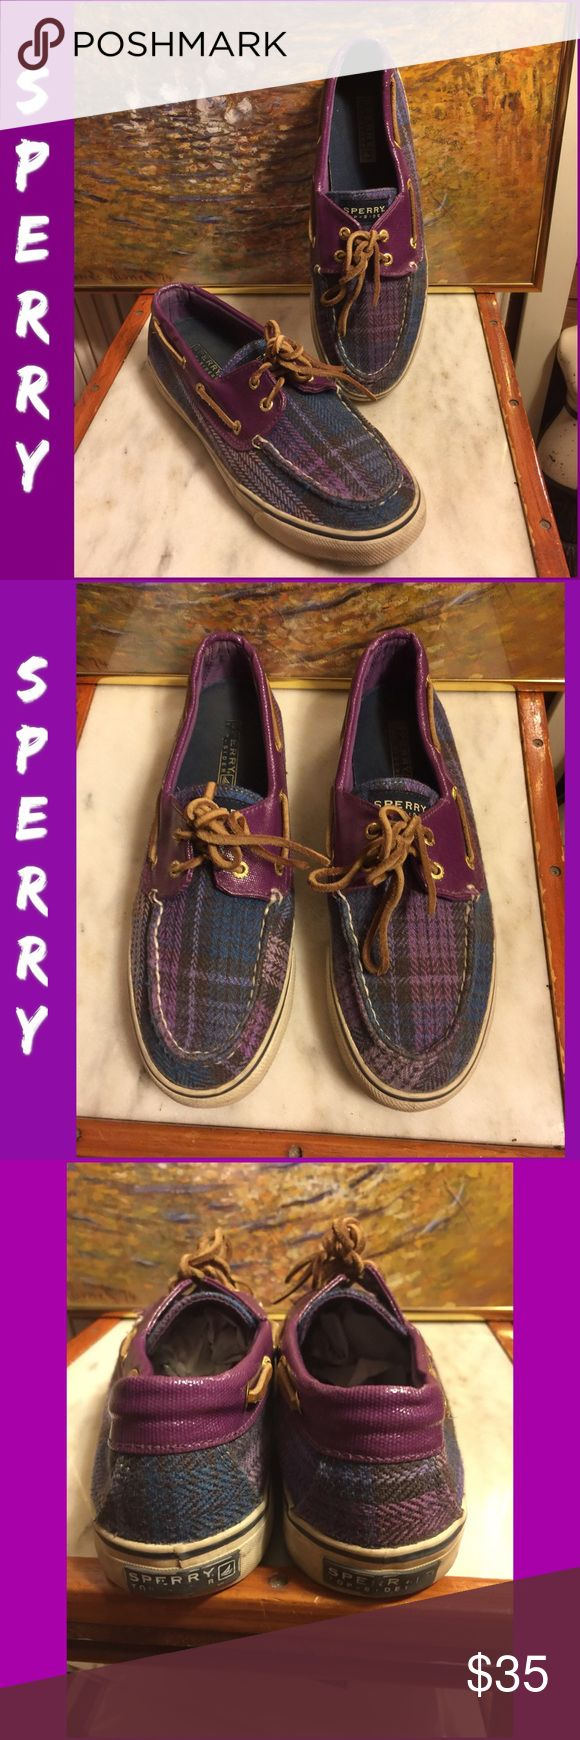 SALE🌷SZ 8.5- SPERRY TOP-SIDER PLUM/PLAID FLATS CLASSIC SPERRY TOP-SIDET BOAT SHOES. UNIQUE PLUM LEATHER/PLAID FLATS. SZ 8.5 M ( Medium/regular width). OVERALL GREAT PRE-OWNED CONDITION. RETAIL $99. PLEASE DO NOT HESITATE TO ASK ANY QUESTIONS! #sperrytopsiders #sperryflats #plumlearther #plaid Sperry Top-Sider Shoes Flats & Loafers